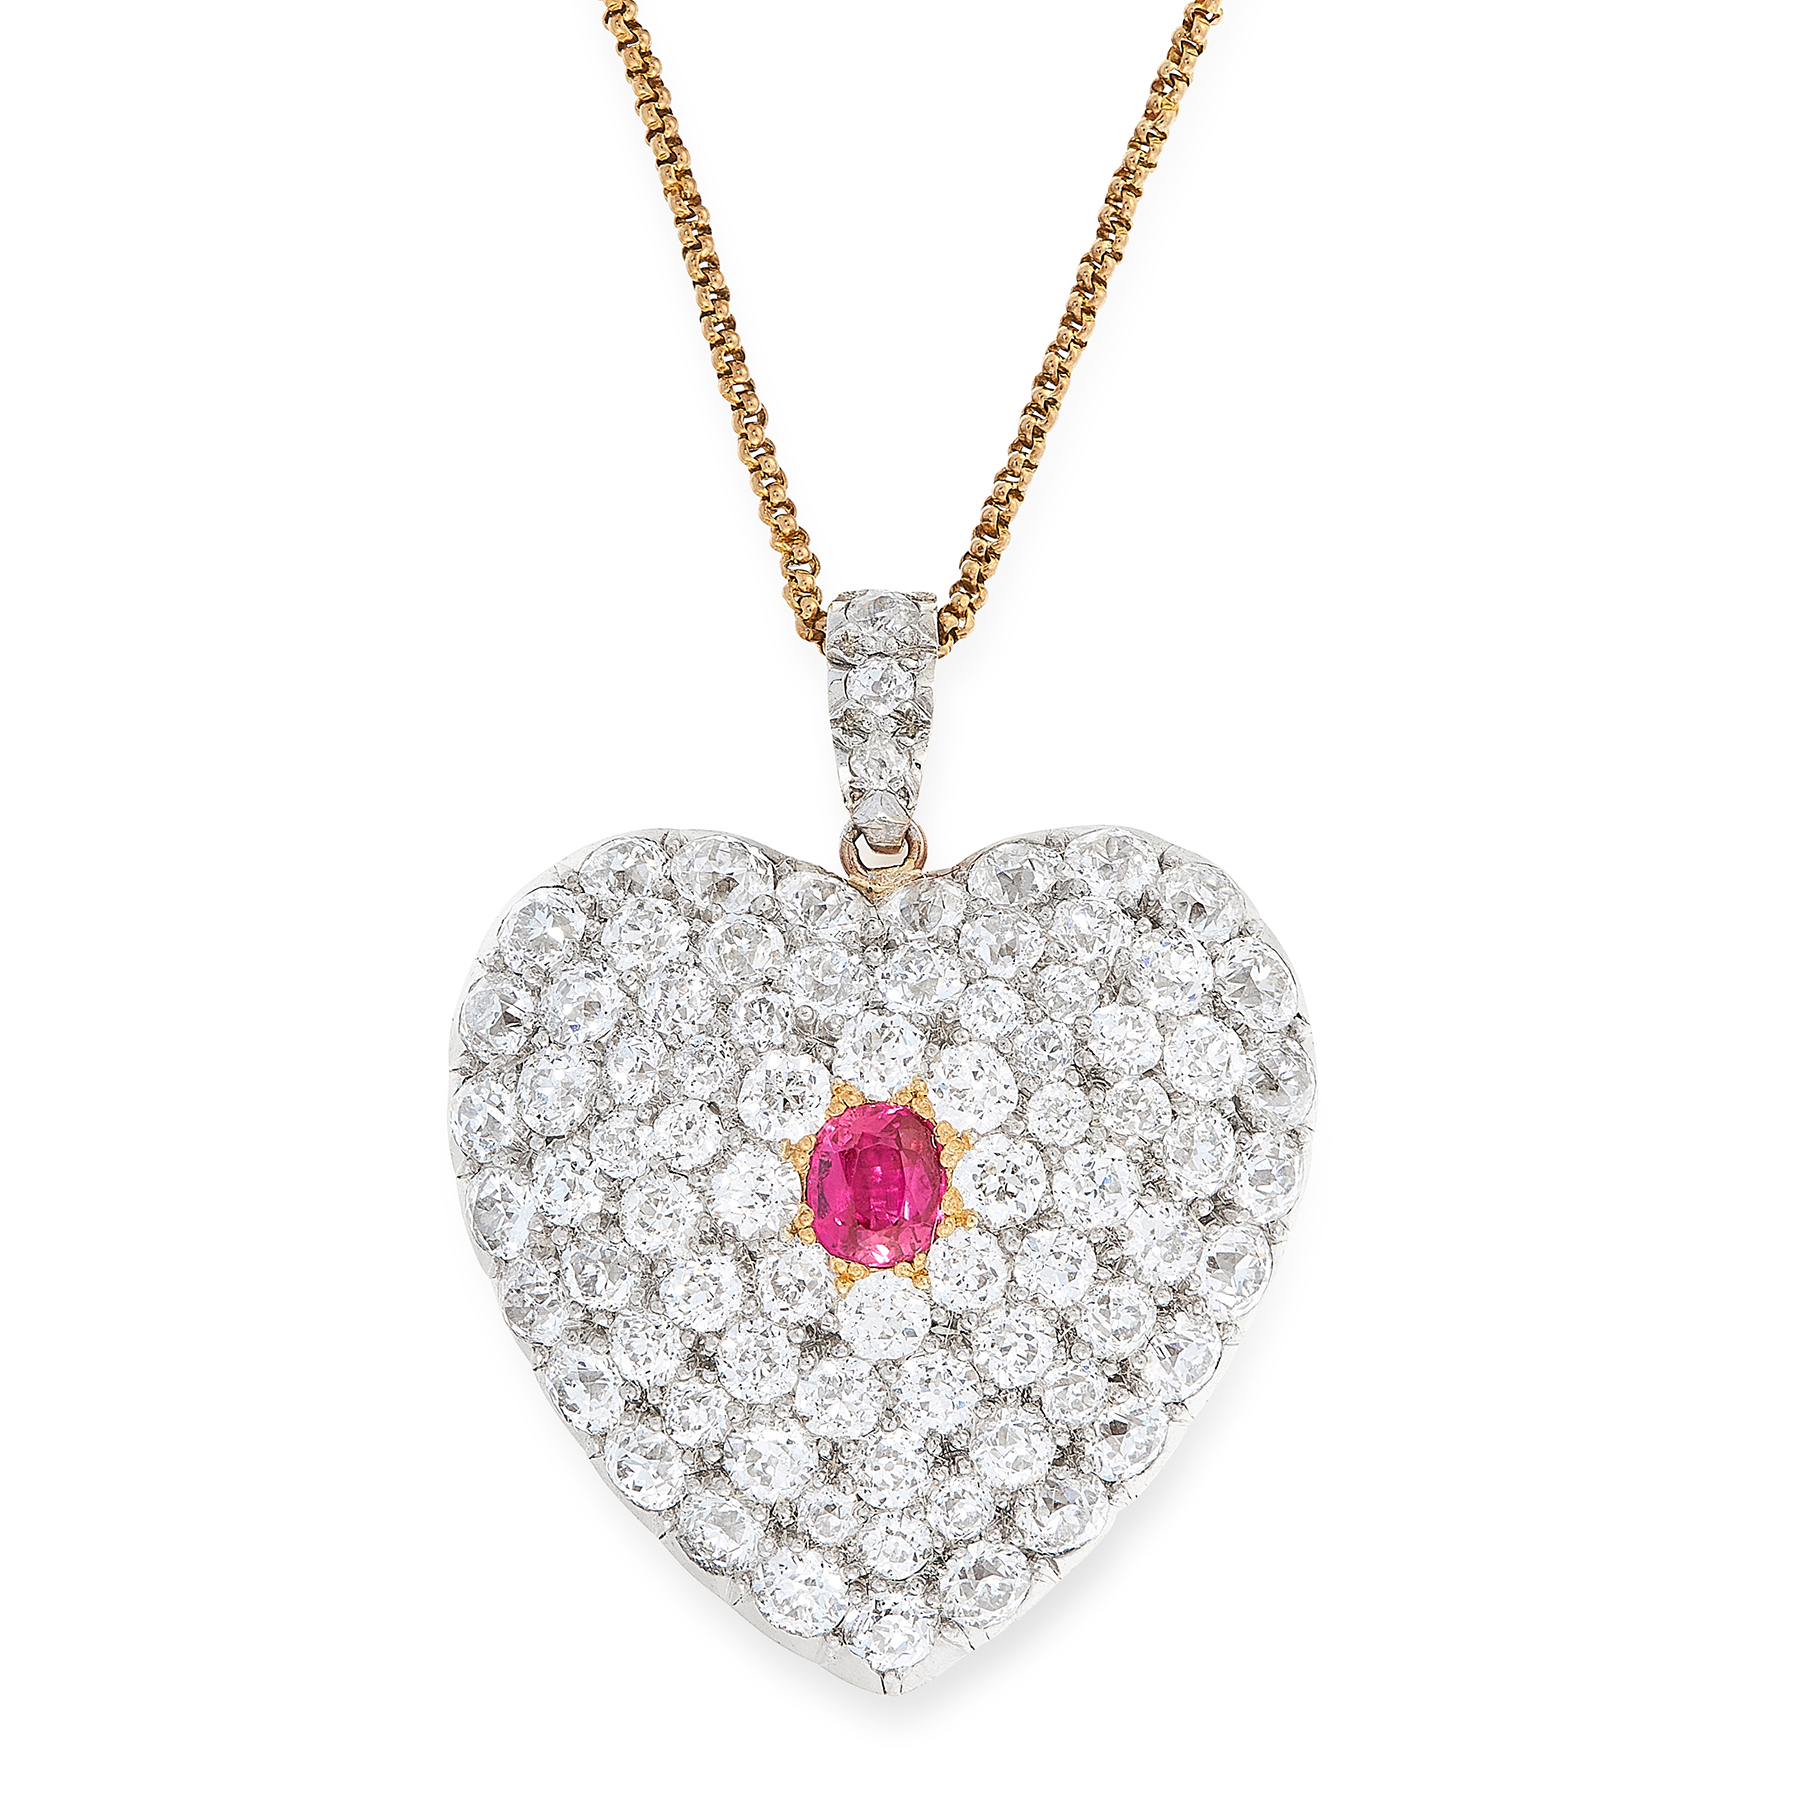 AN ANTIQUE RUBY AND DIAMOND MOURNING LOCKET PENDANT AND CHAIN in yellow gold and silver, designed as